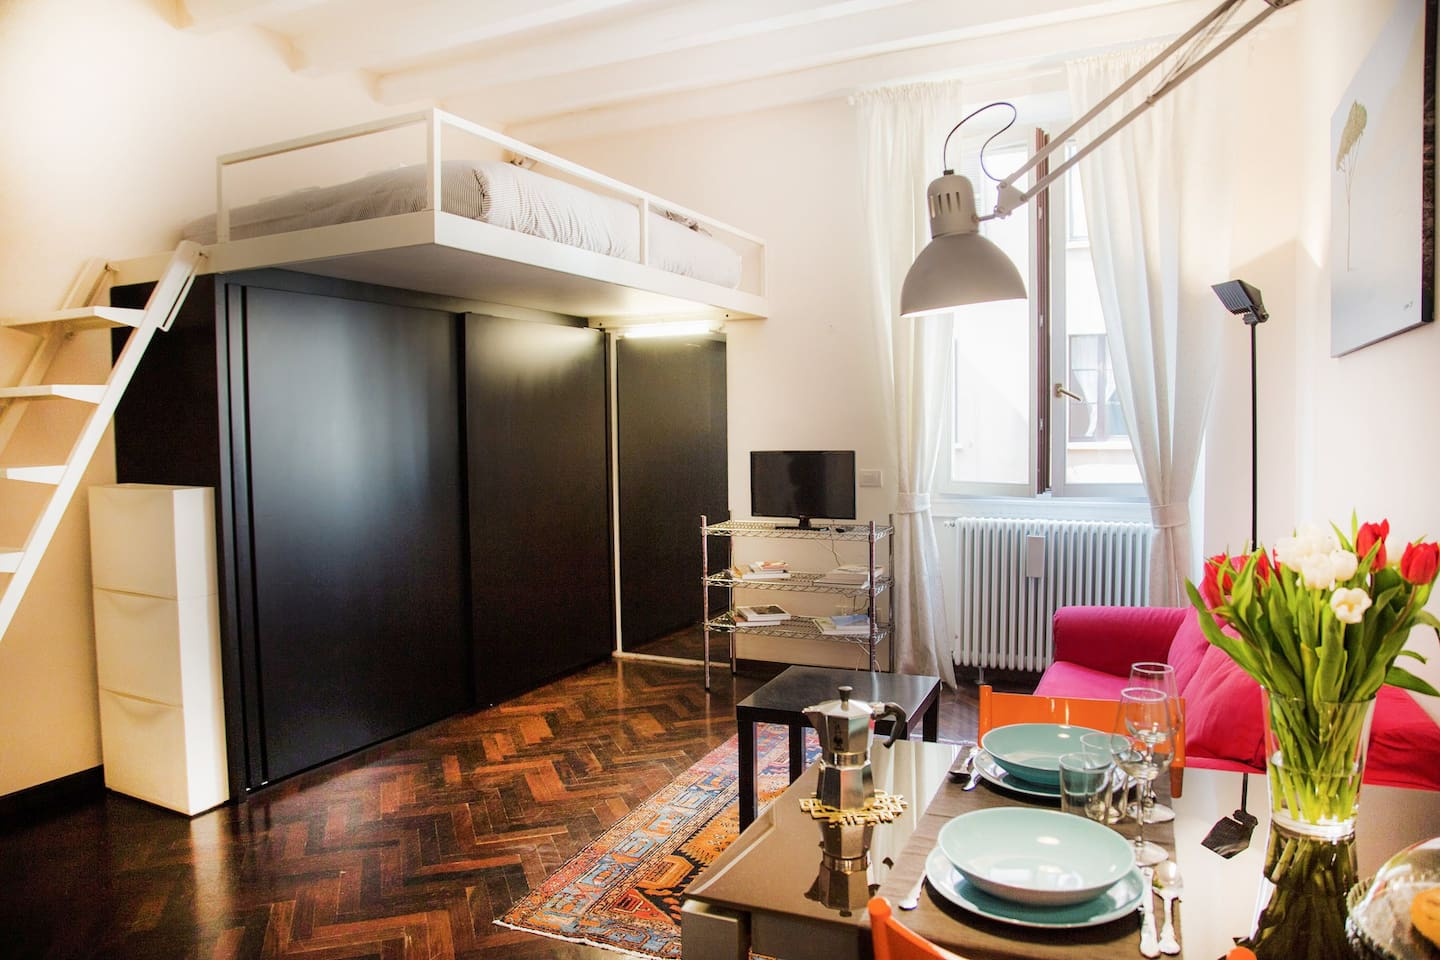 A wide studio apartment, full of light and colour